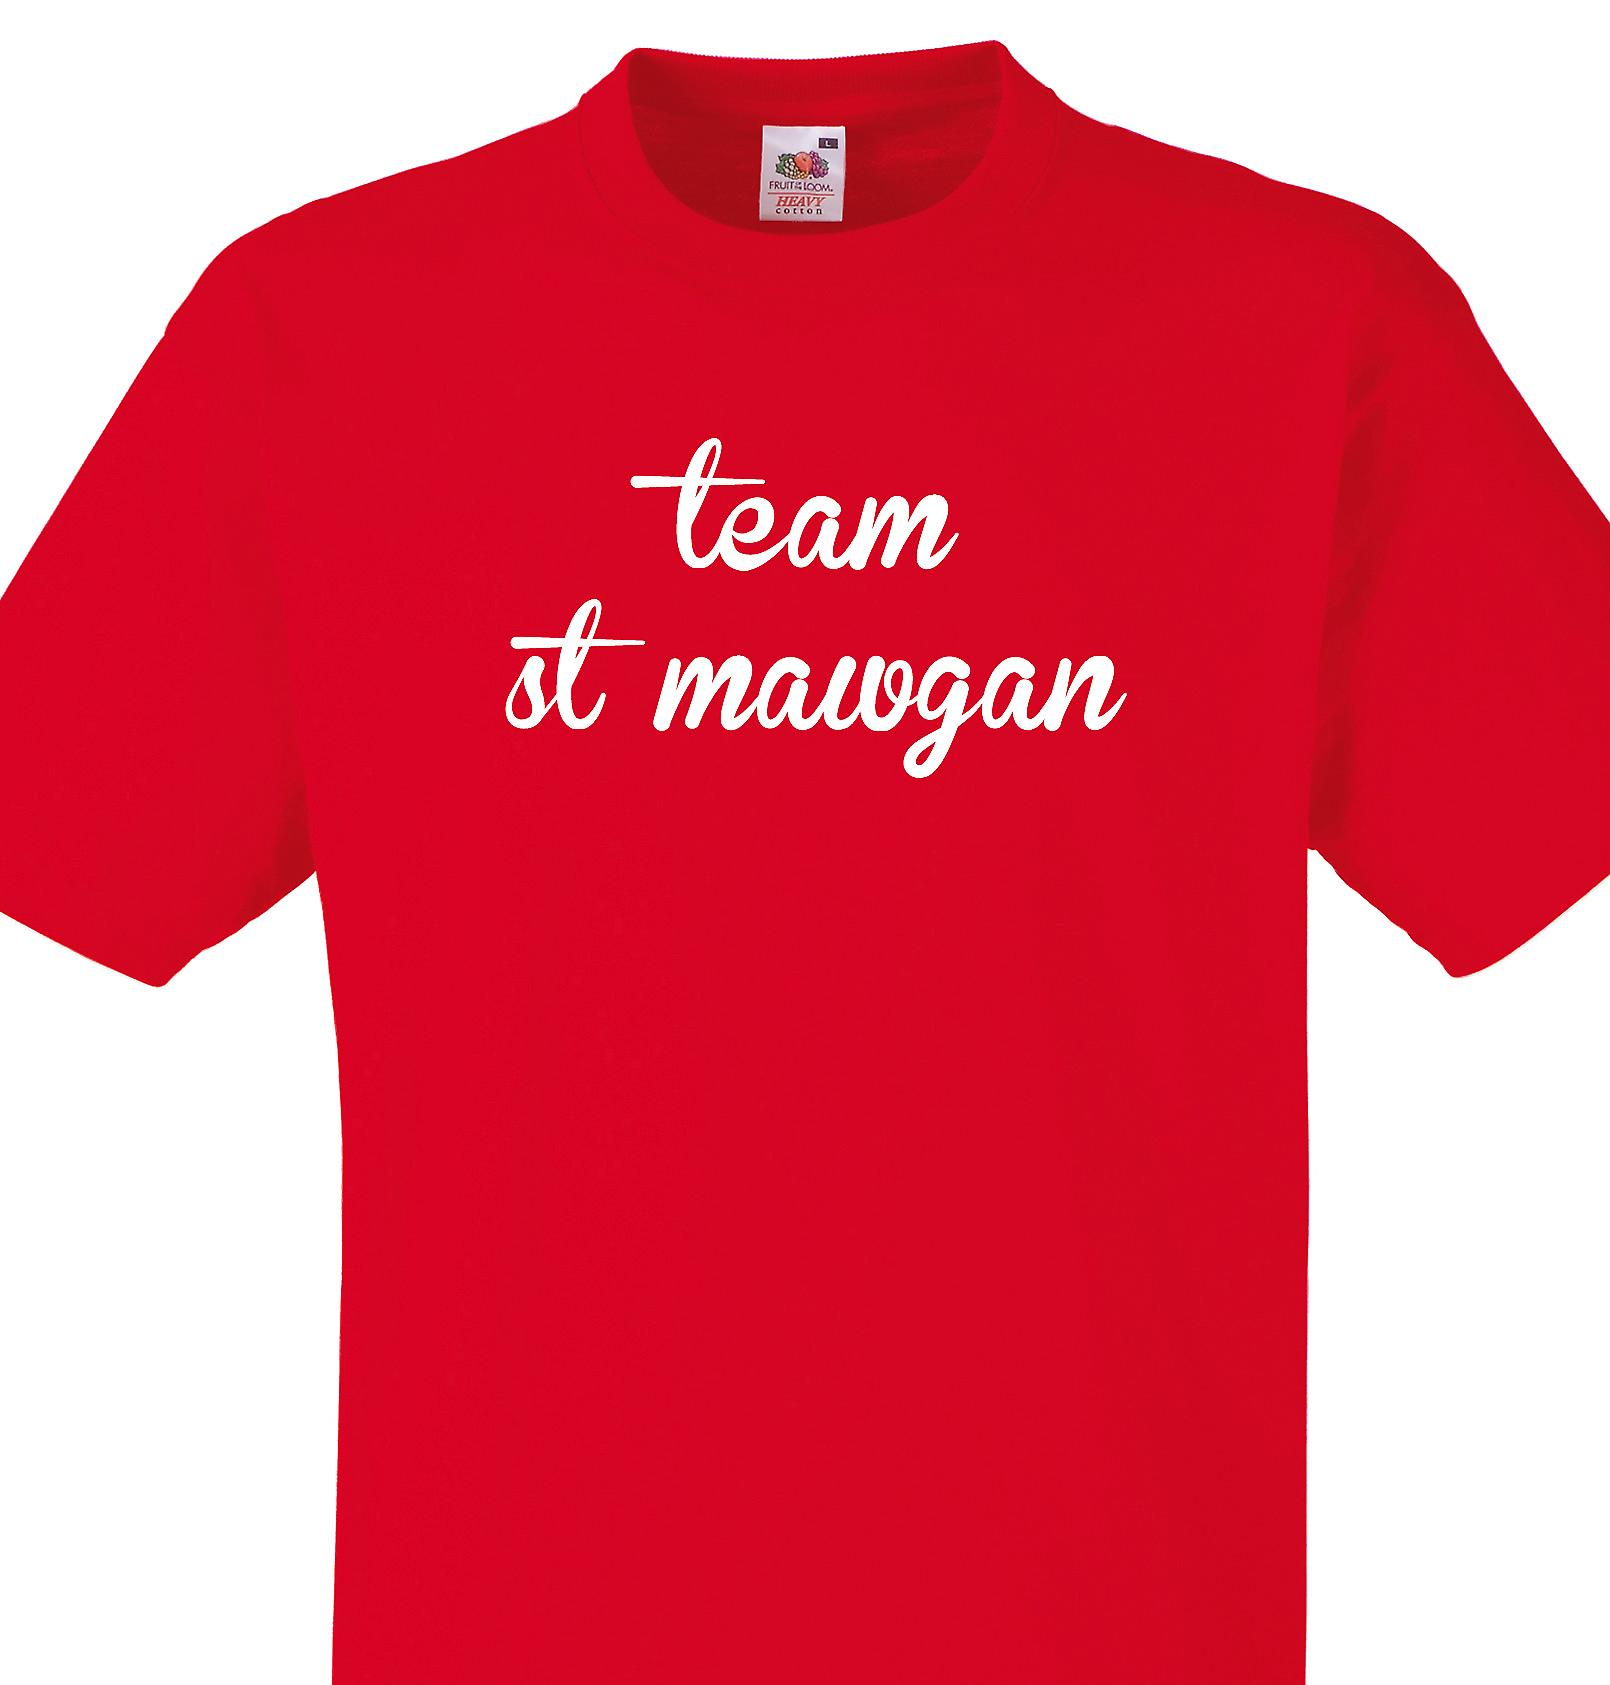 Team St mawgan Red T shirt